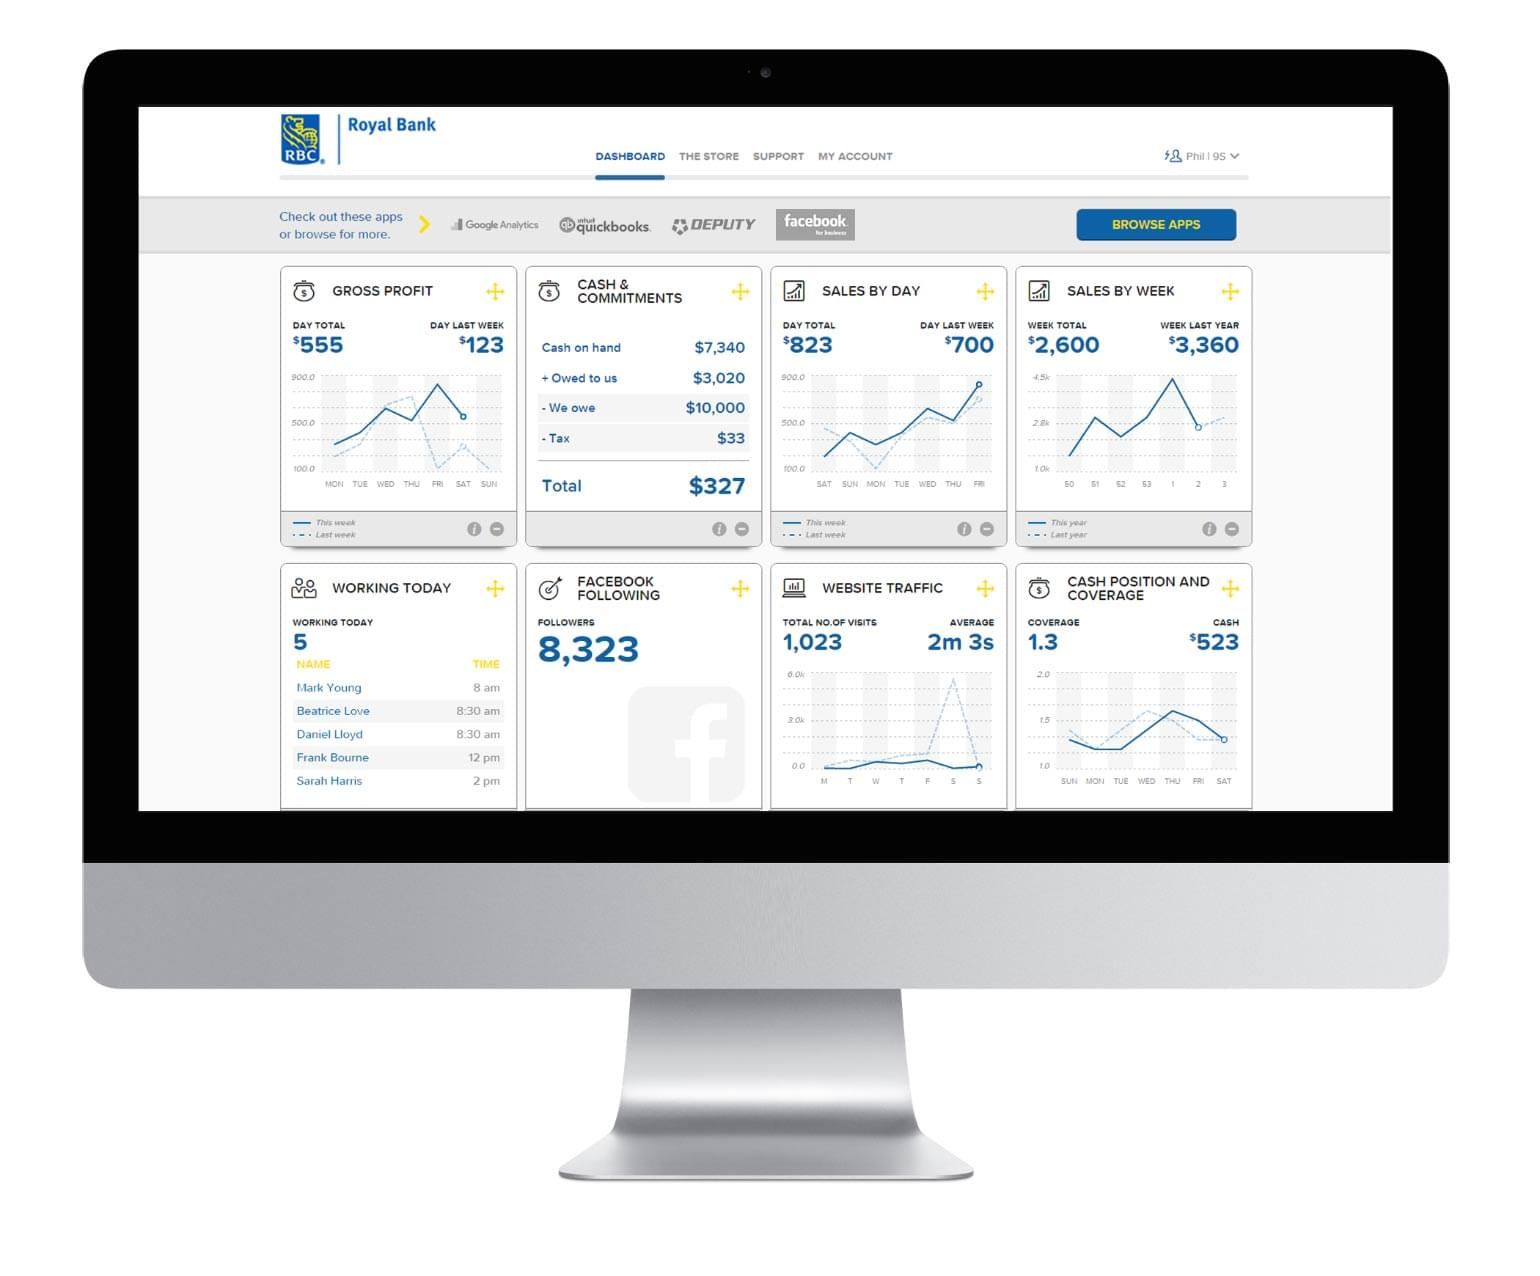 MyBusiness Dashboard provides a streamlined view of all the information you need to understand your business.